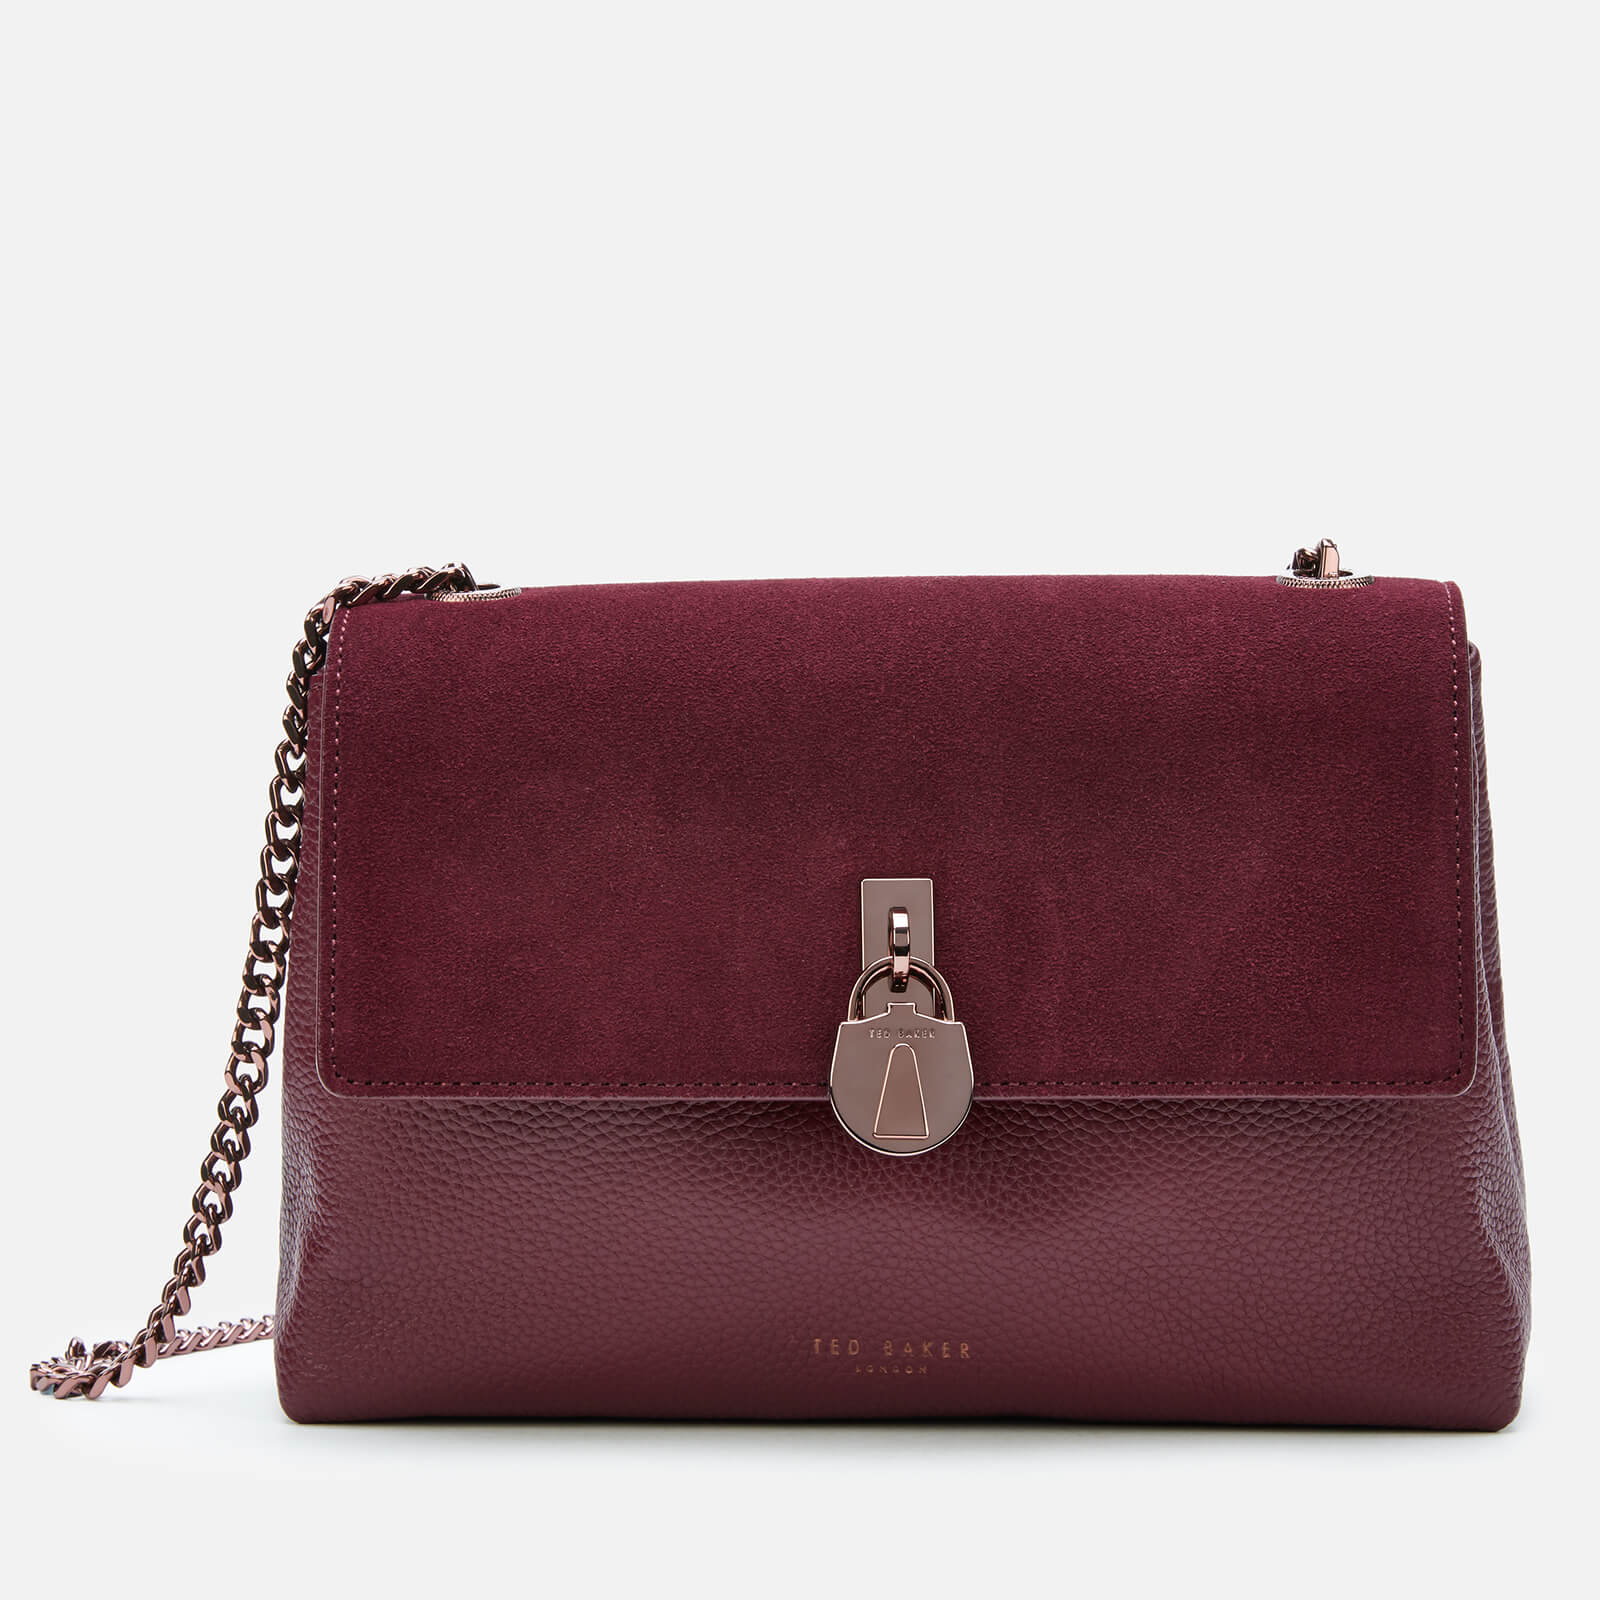 Ted Baker Women's Helena Suede Padlock Cross Body Bag - Deep Purple